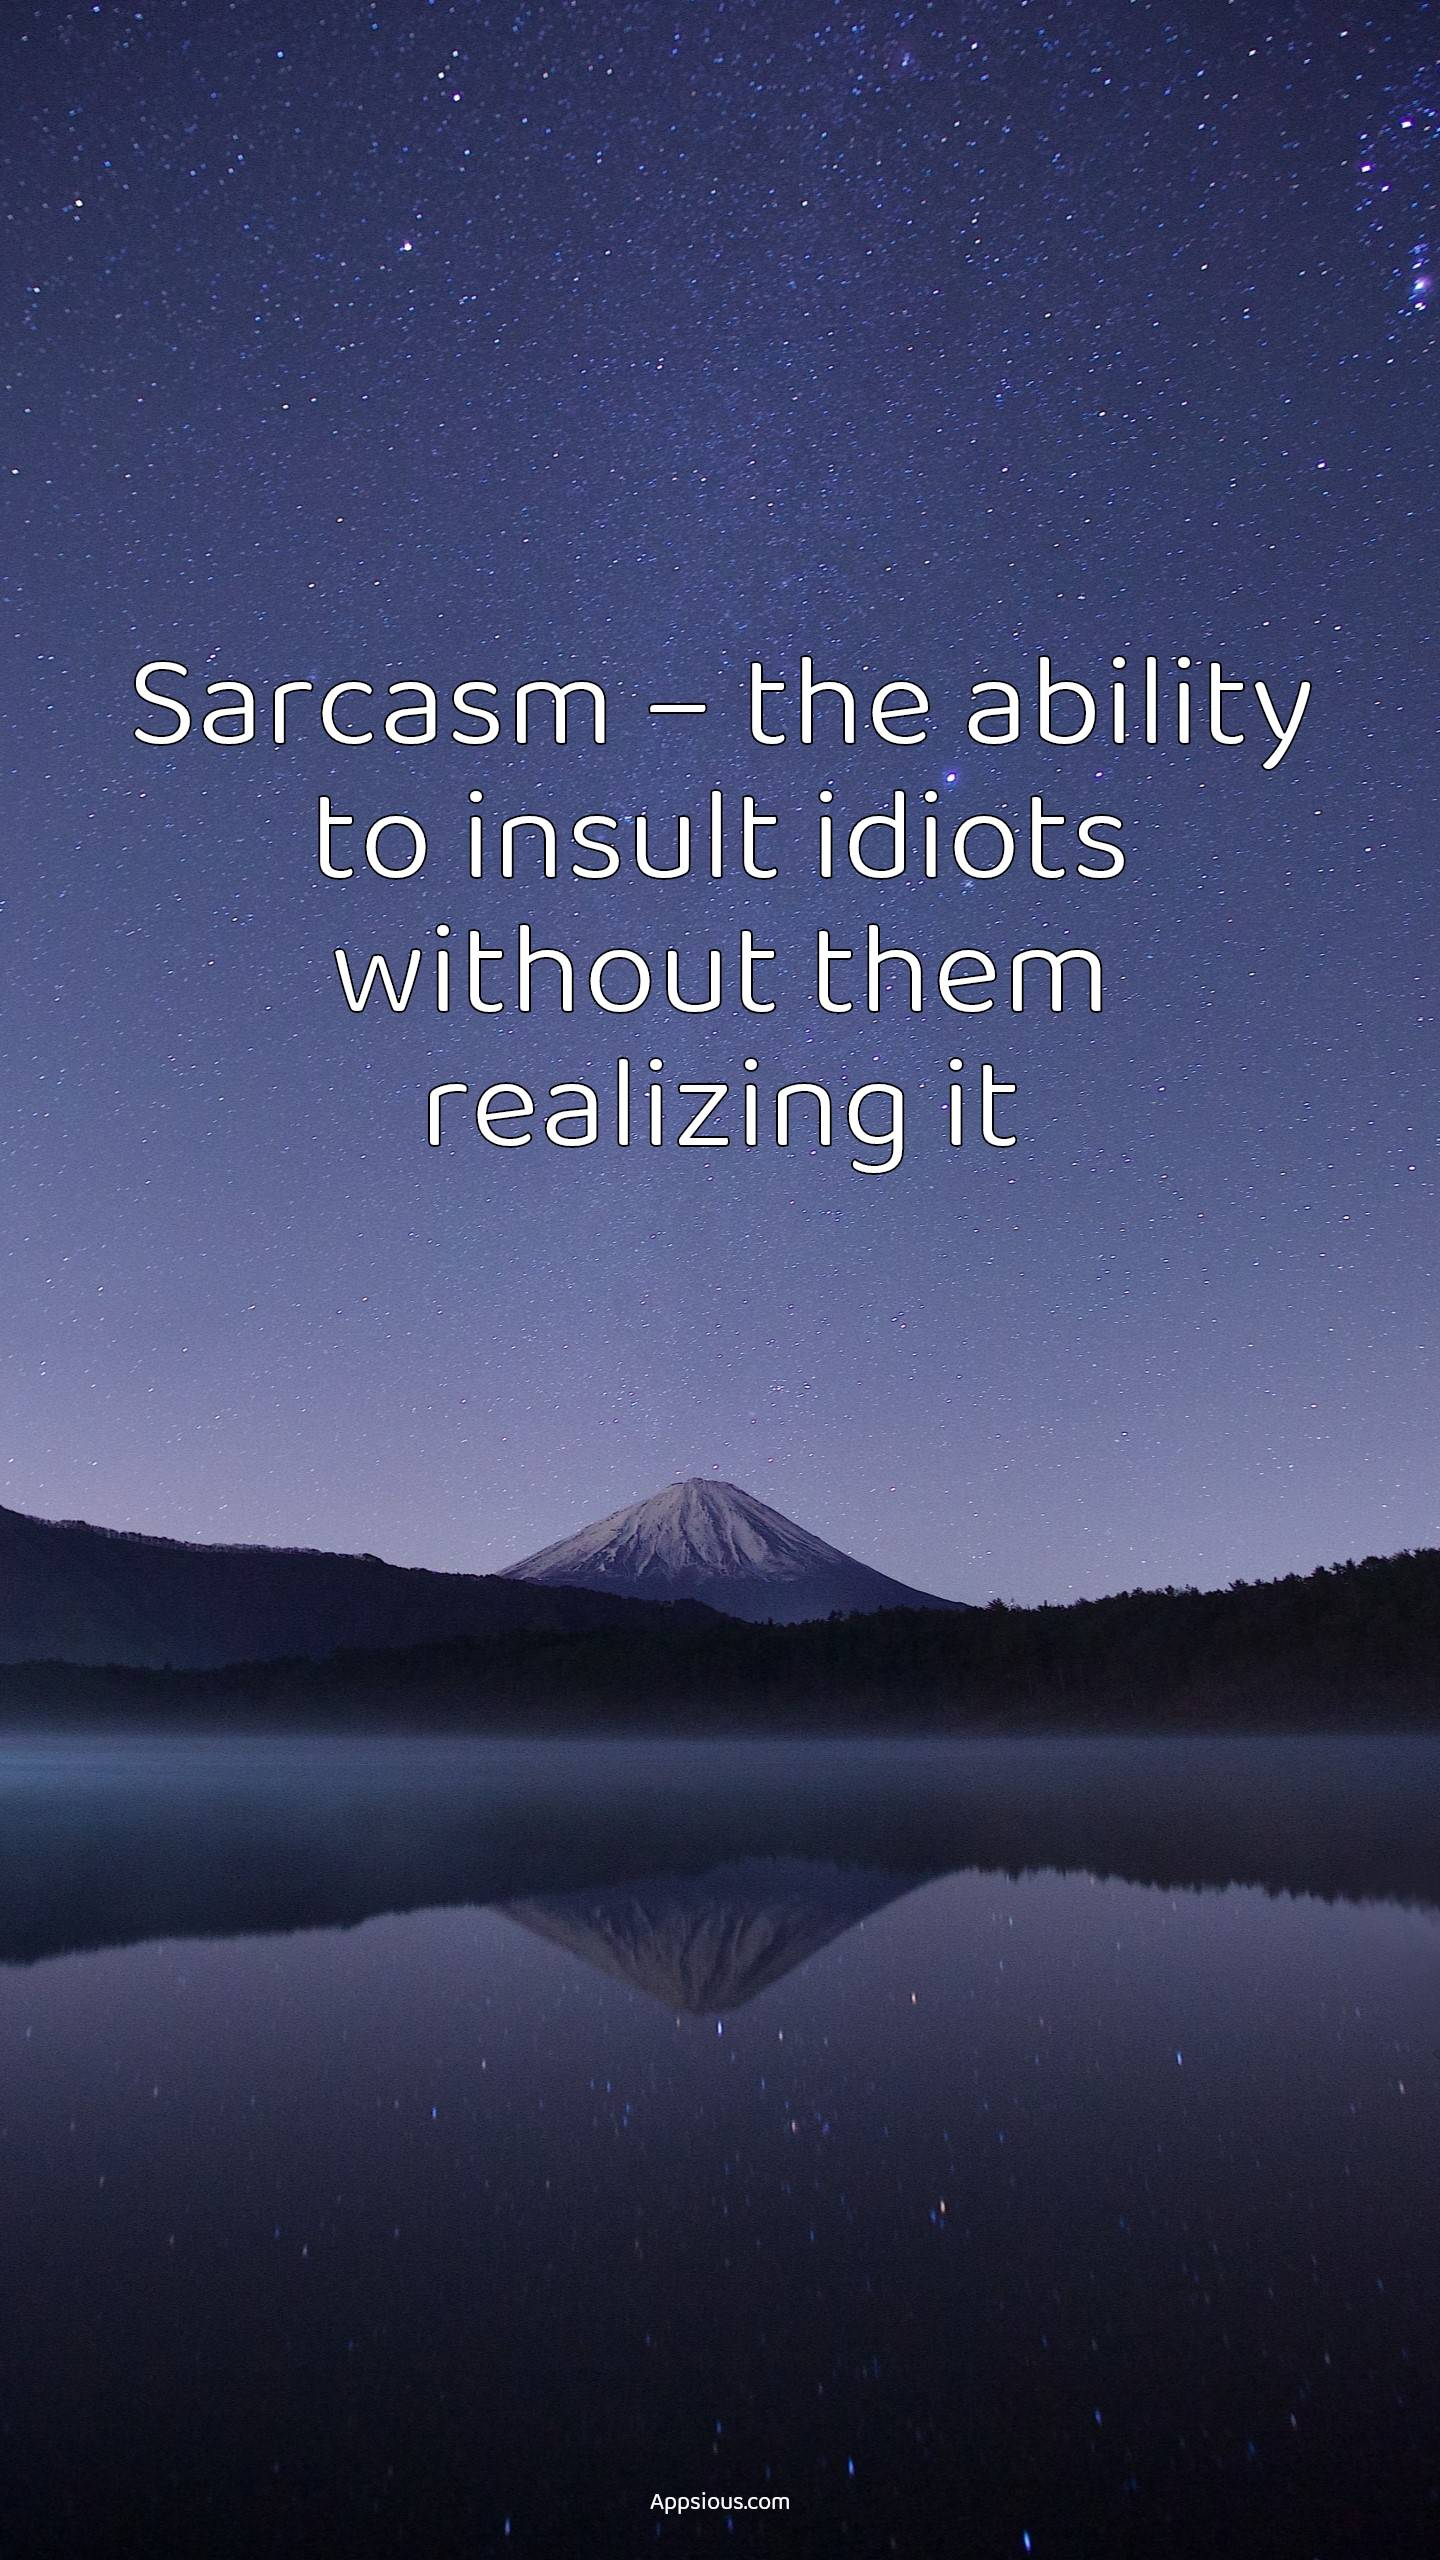 Sarcasm – the ability to insult idiots without them realizing it